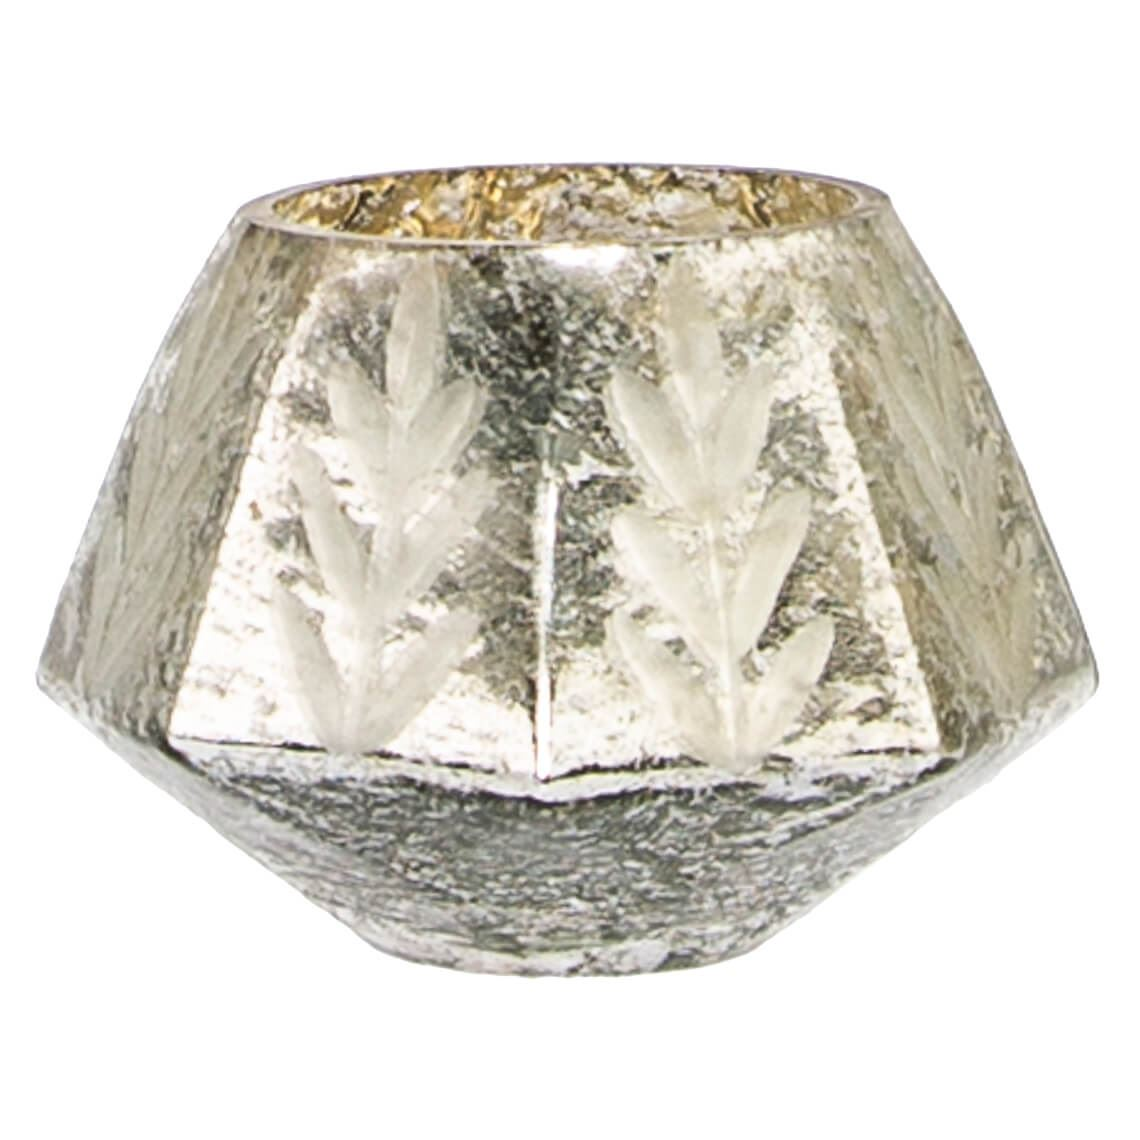 Mercury Candle Holder Colour Size W 12cm x D 12cm x H 9cm in Silver Glass Freedom by Freedom, a Plants for sale on Style Sourcebook